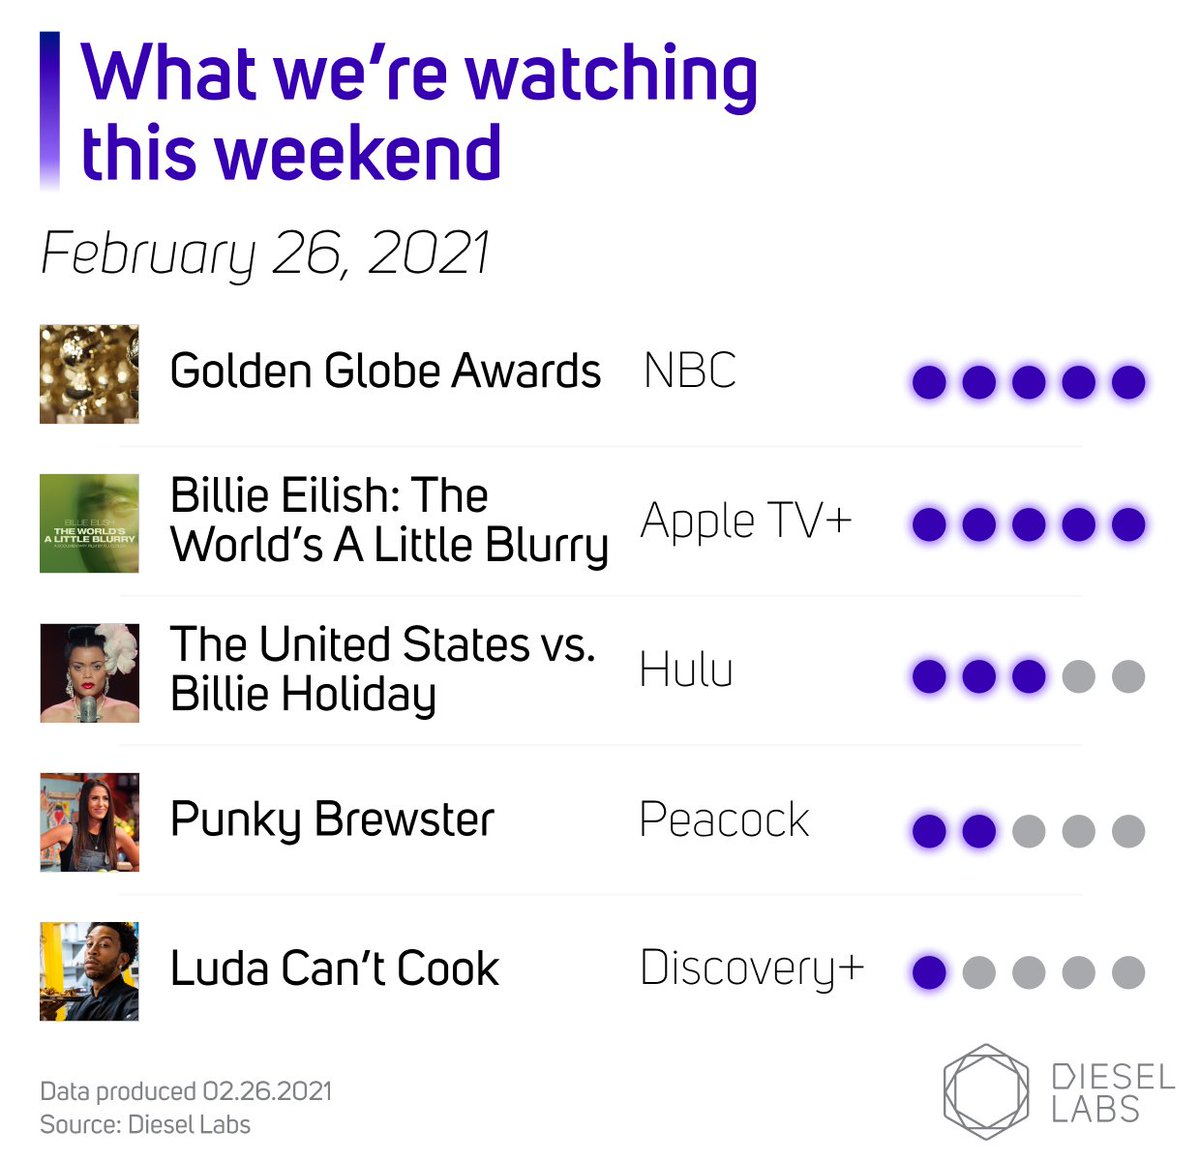 We're looking forward to watching the #GoldenGlobes this weekend! But while we wait for Sunday evening, here's what else our team will be checking out on TV: #theworldisalittleblurry on @AppleTVPlus, @USvsBillie, #punkybrewster on @peacockTV and @discoveryplus's #LudaCantCook